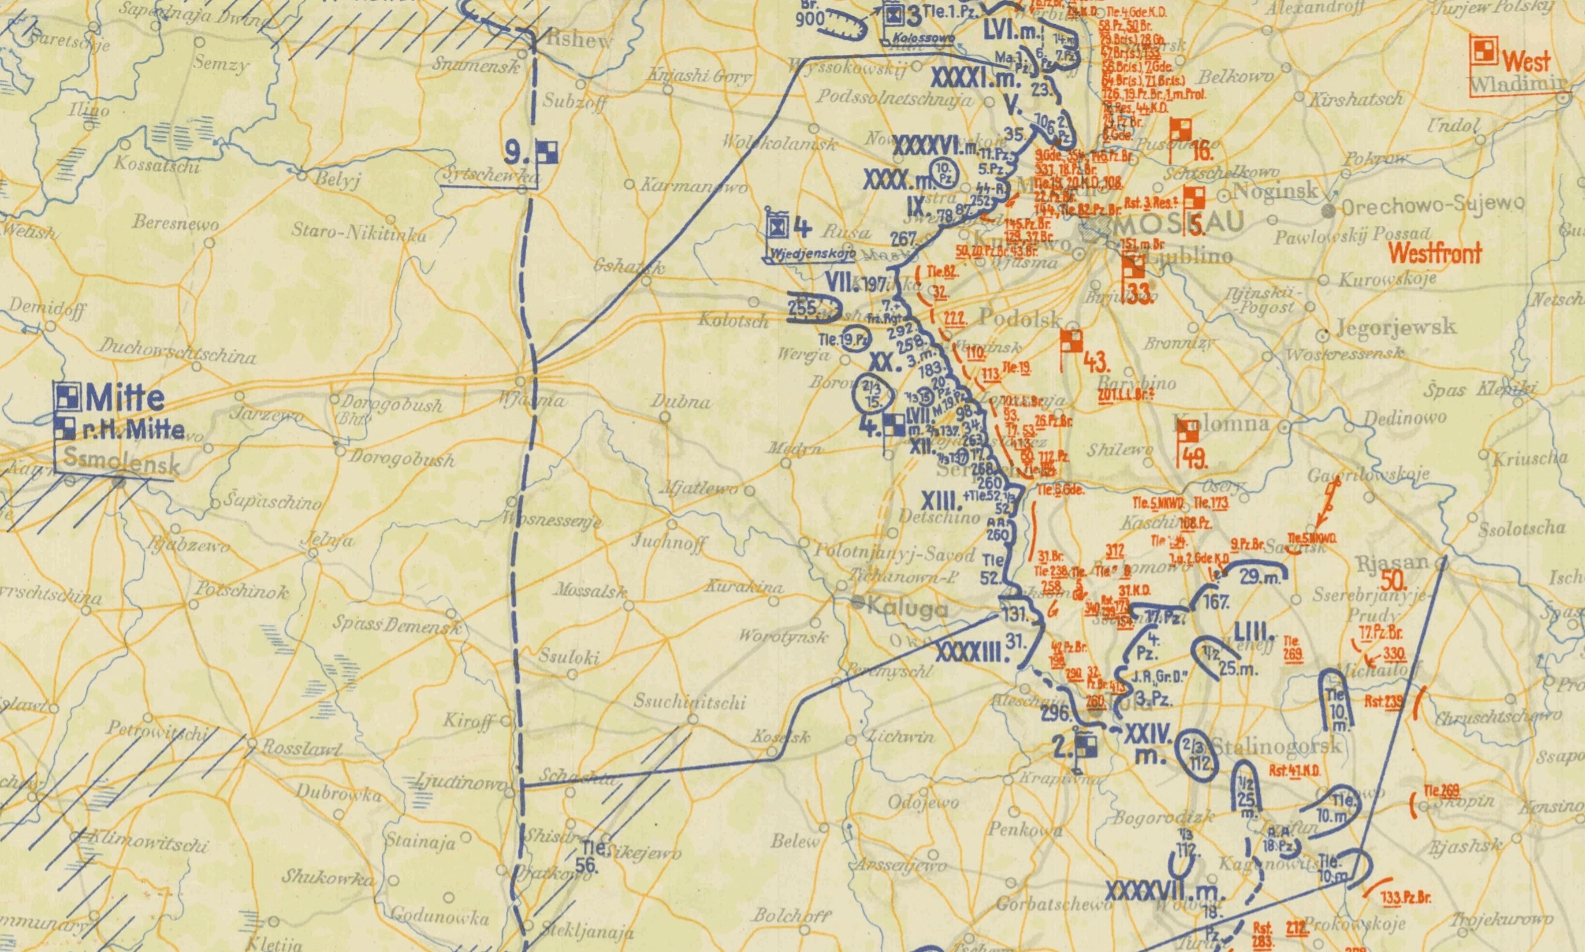 New Wwii German Maps At The National Archives | Mystics & Statistics with German Military Maps Ww2